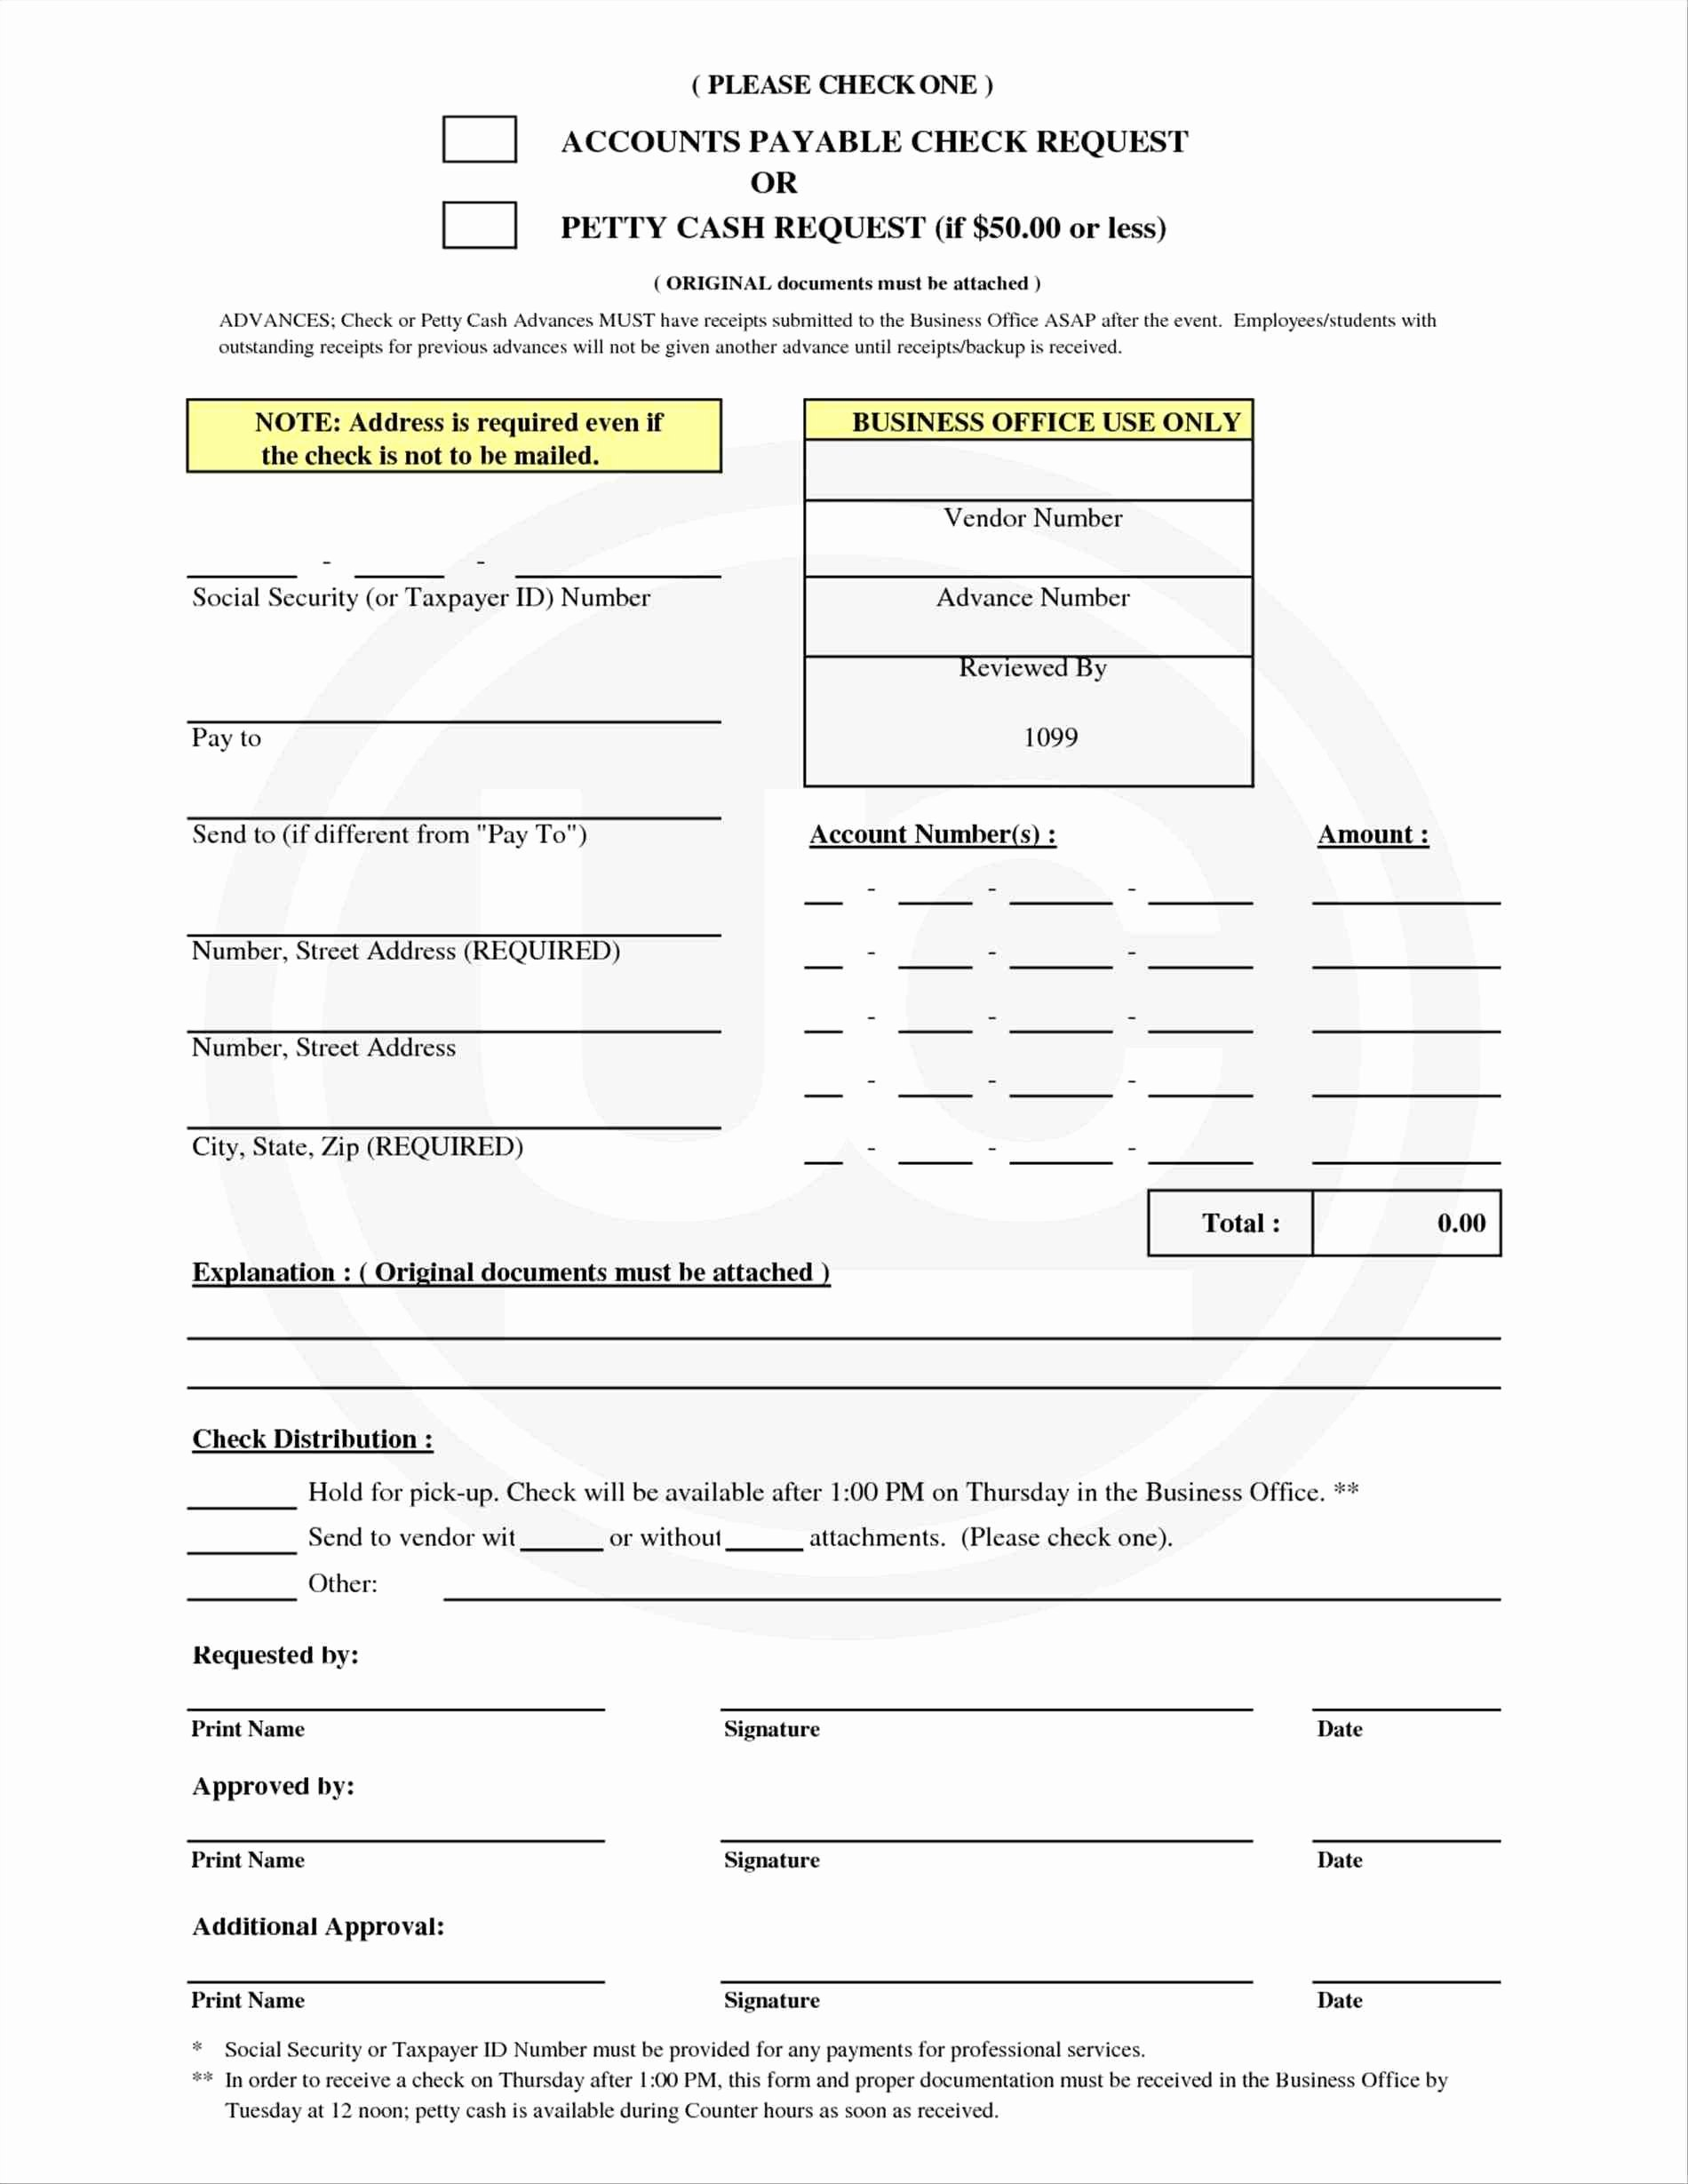 Design Request form Template Elegant Cash Advance Request form Template